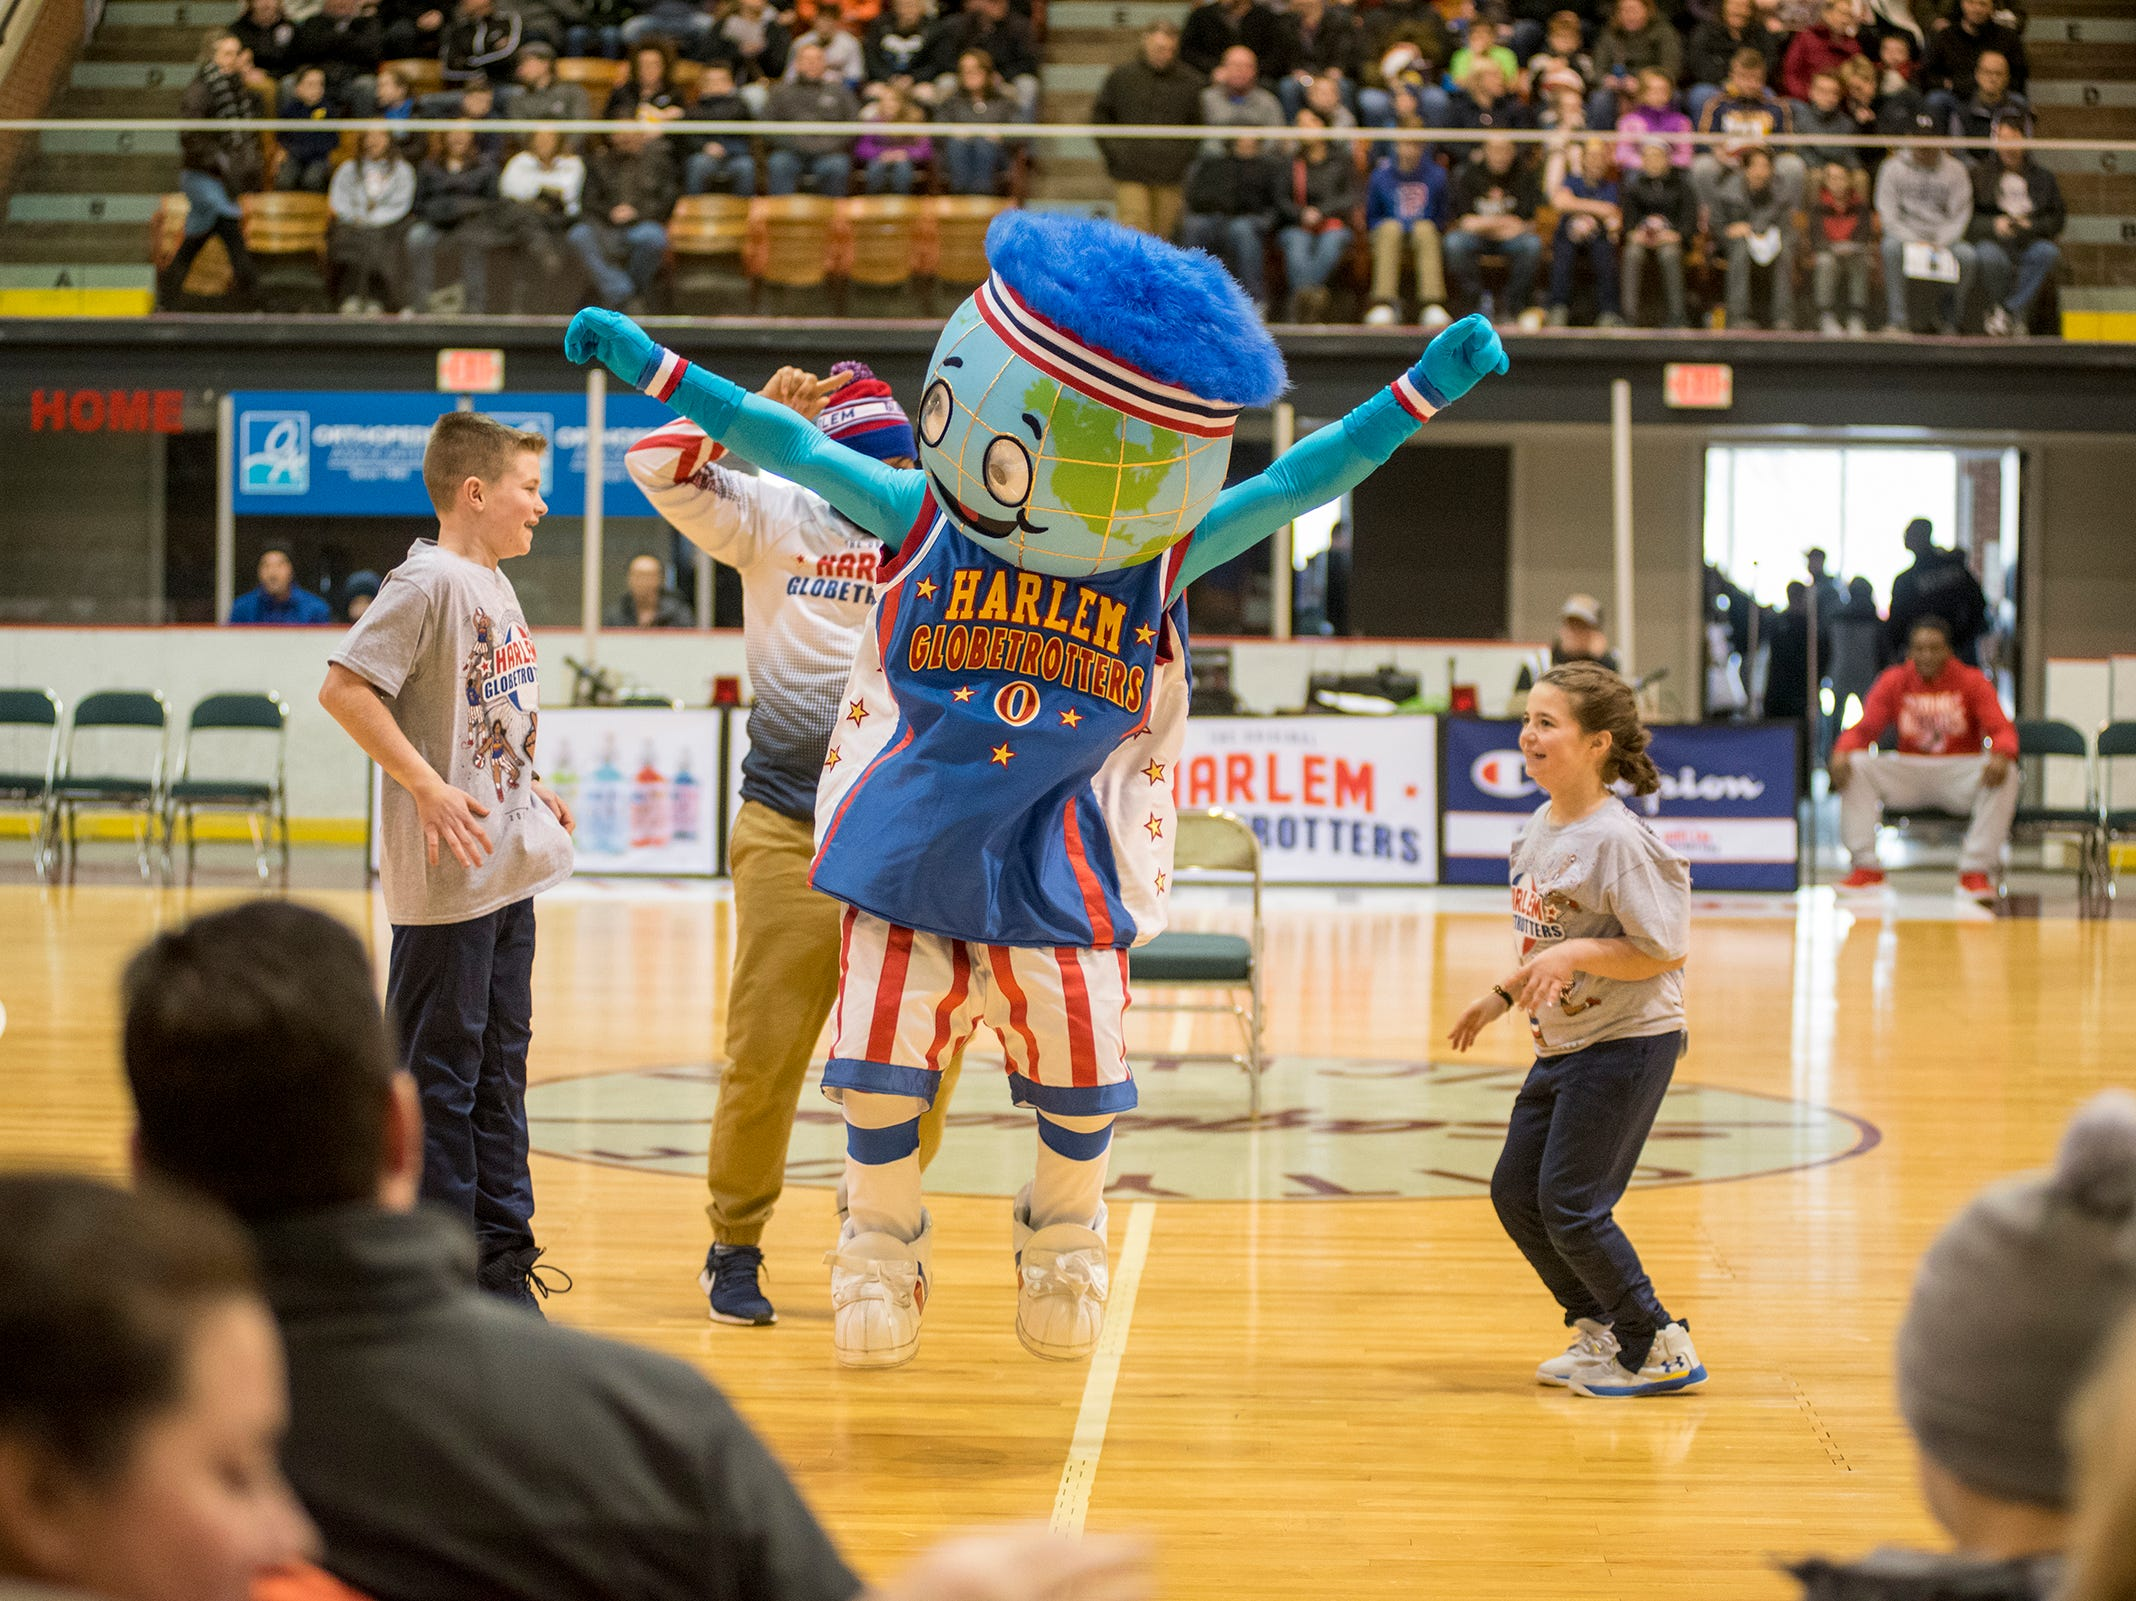 Globie, the mascot for the Harlem Globetrotters, entertains a crowd while they take on the Washington Generals Saturday, Feb. 2, 2019 at McMorran Arena in Port Huron.